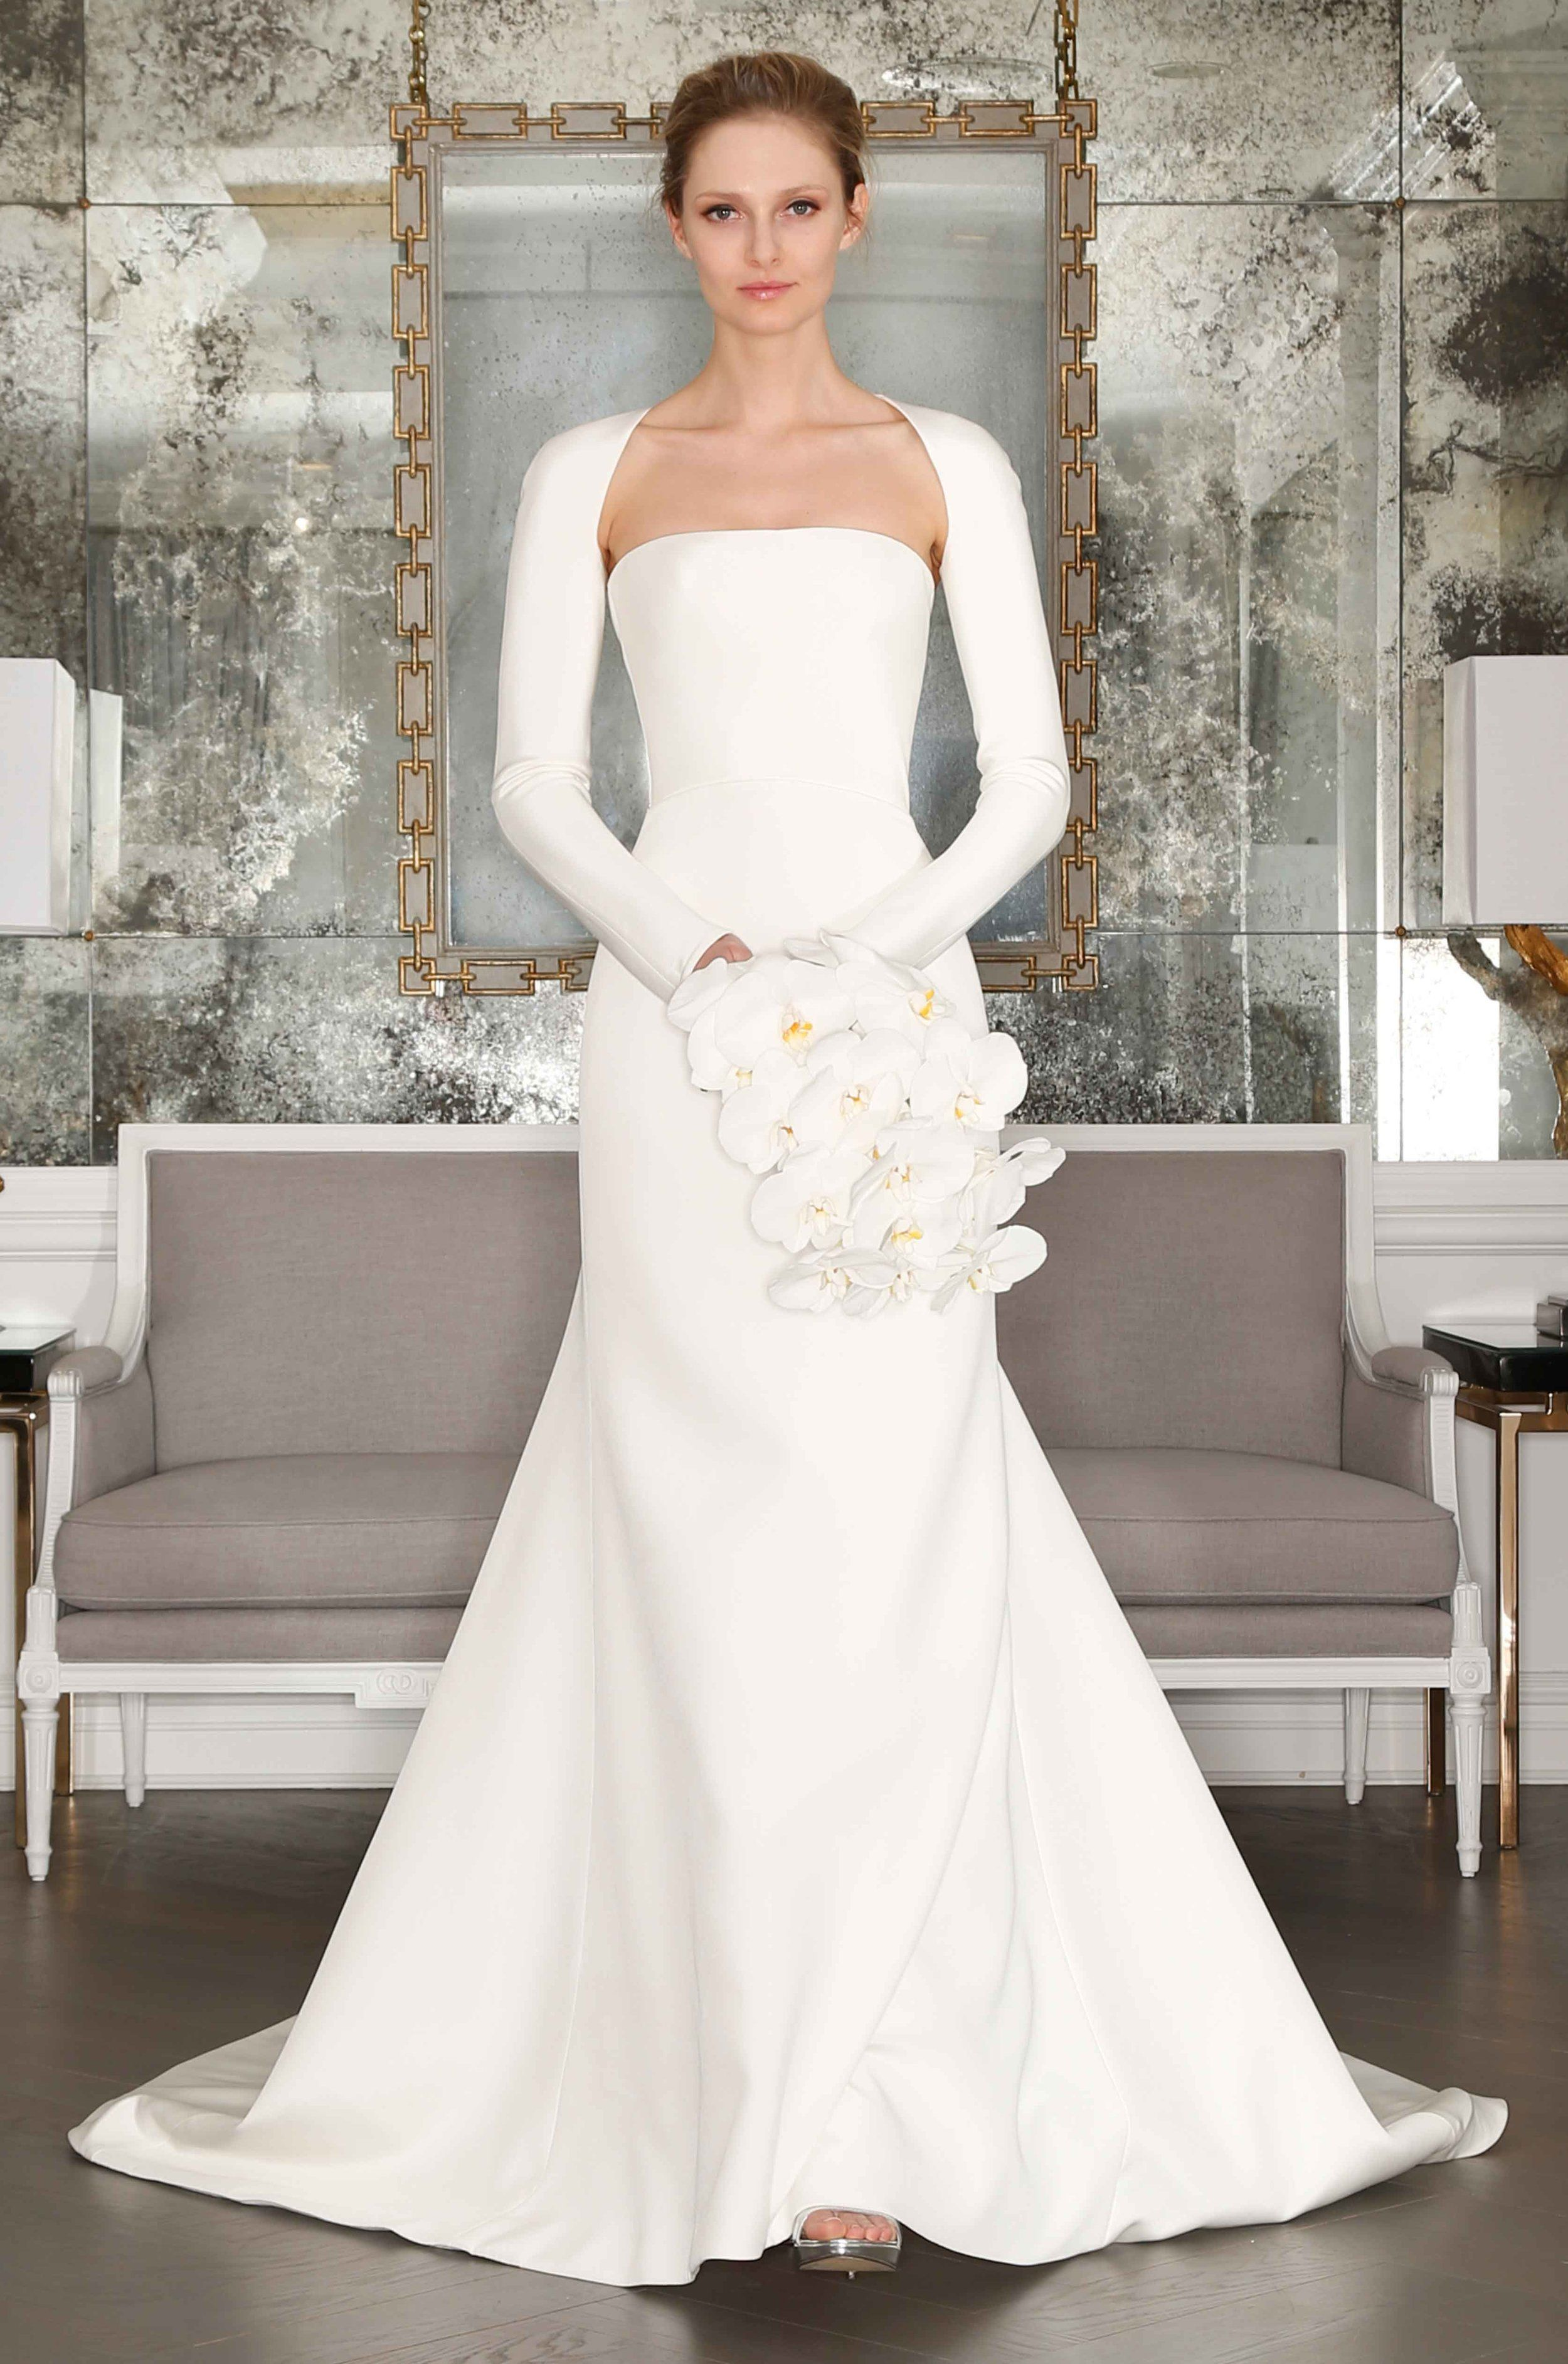 Romona Keveza Luxe Bridal Style RK7402 | The Bridal Gown | Pinterest ...